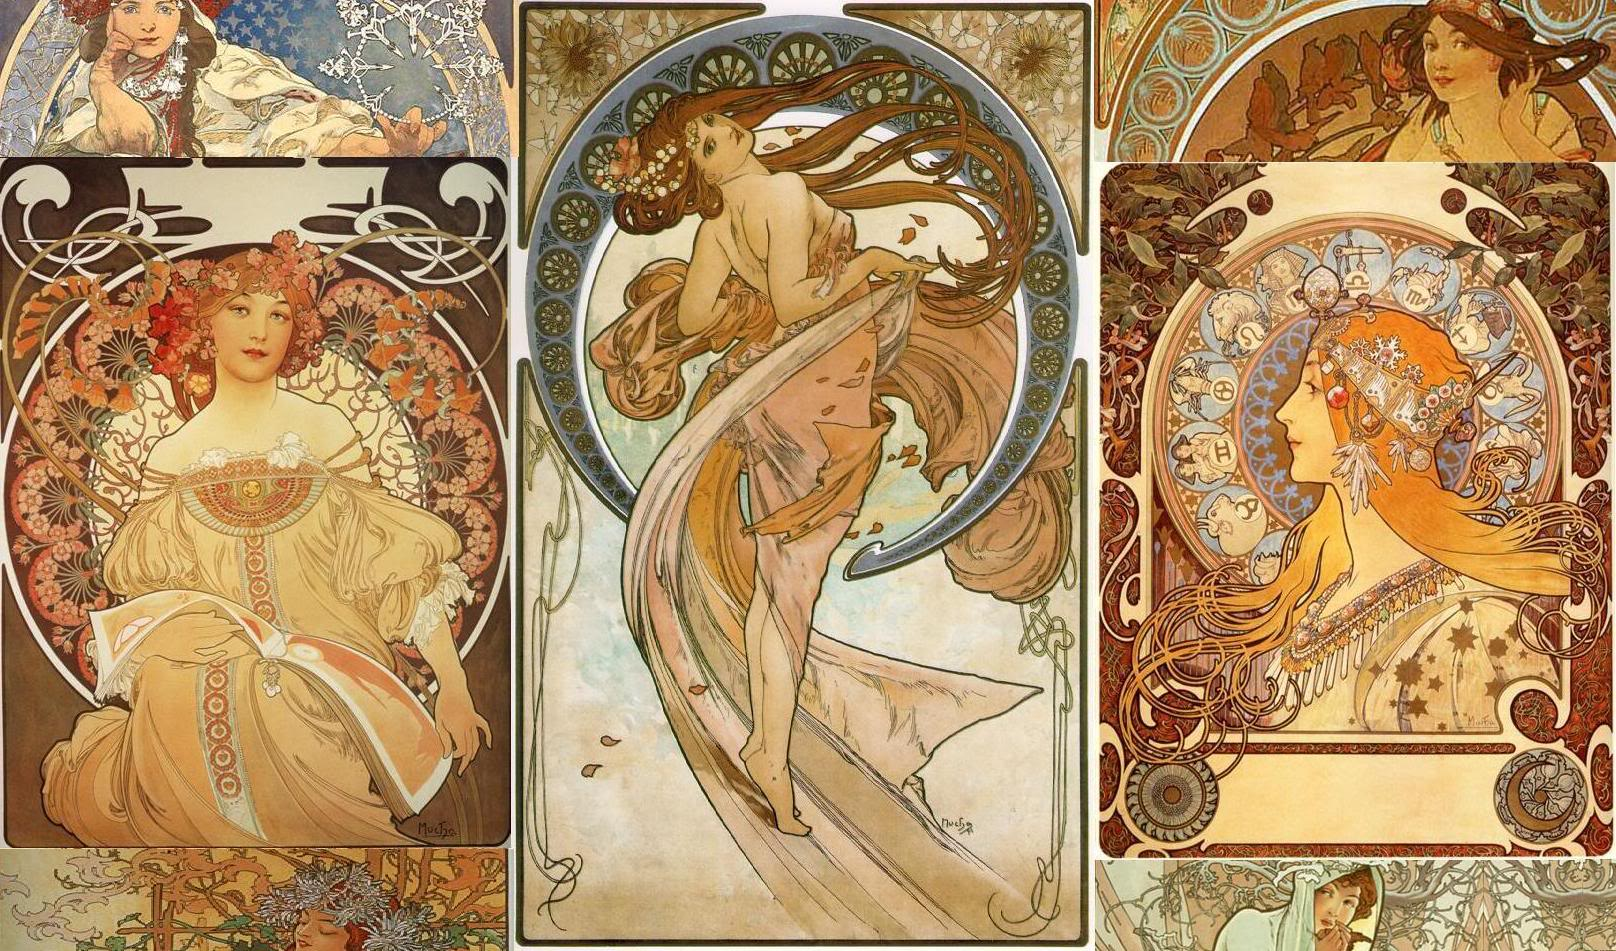 alphonse mucha life works and legacy Legacy at the time when he died, mucha's style was considered outdated his son, author jiří mucha, devoted much of his life to writing about him and bringing attention to his artwork.